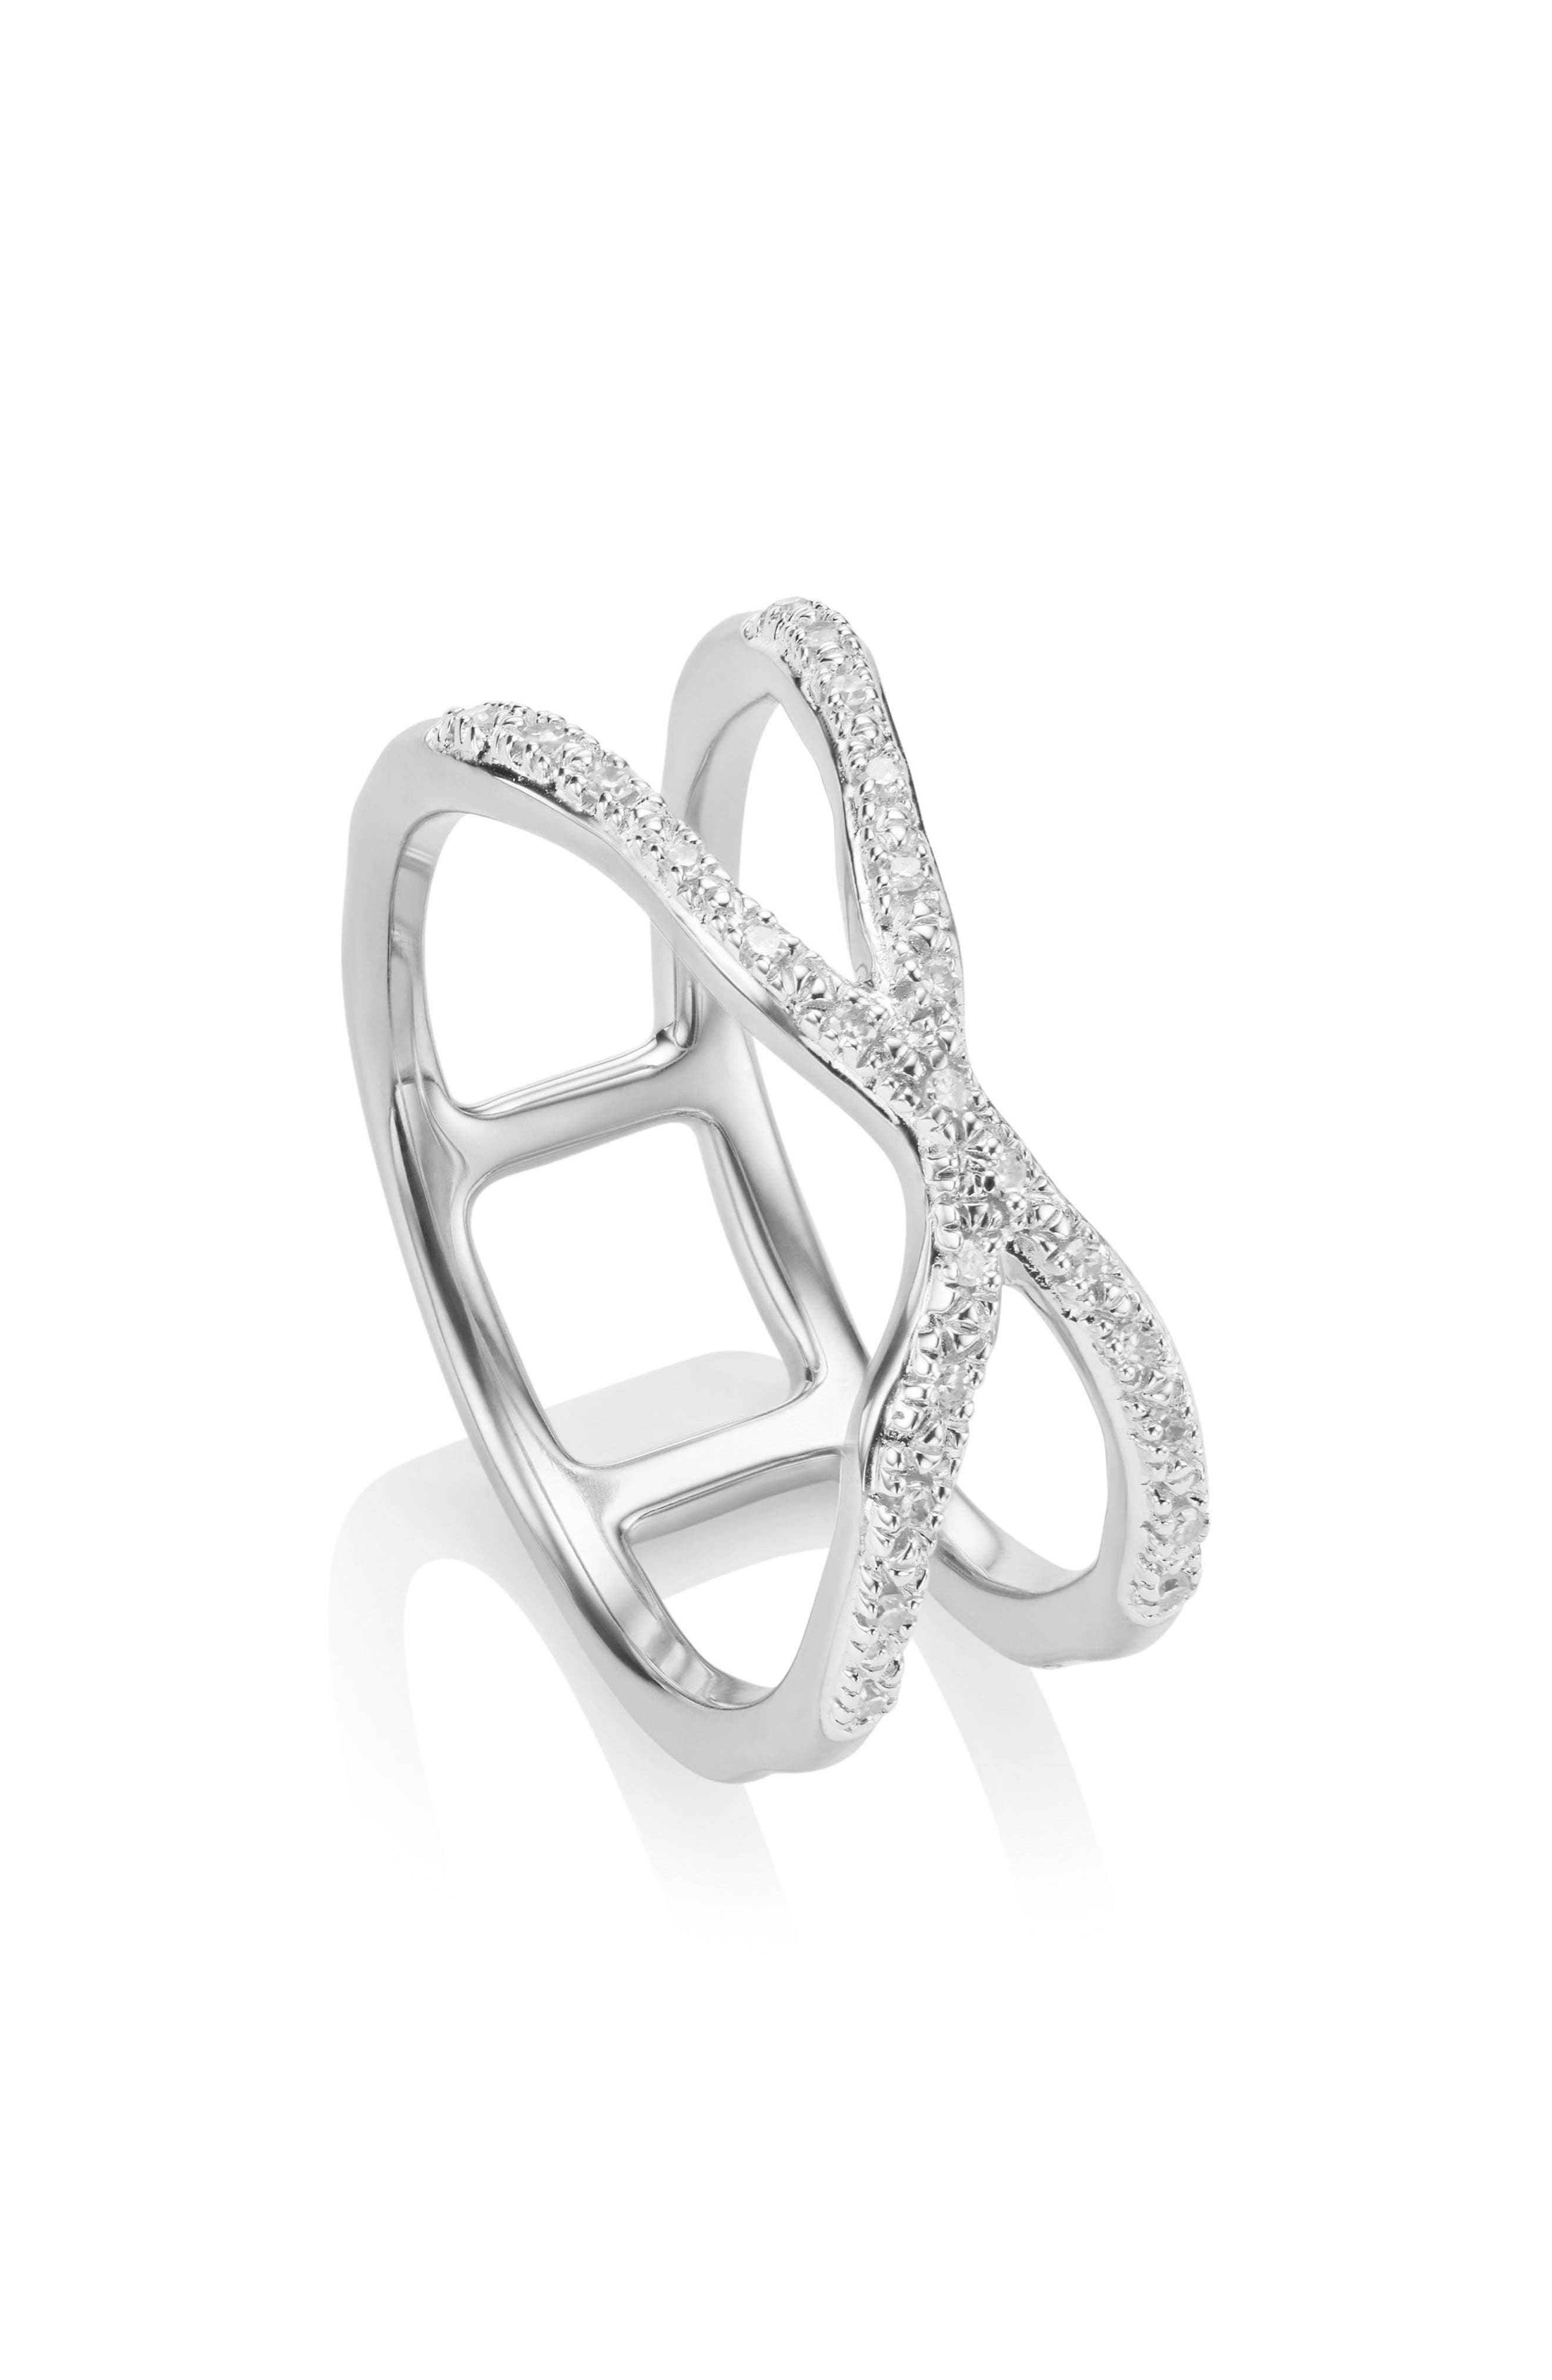 Riva Diamond Ring,                             Main thumbnail 1, color,                             SILVER/ DIAMOND